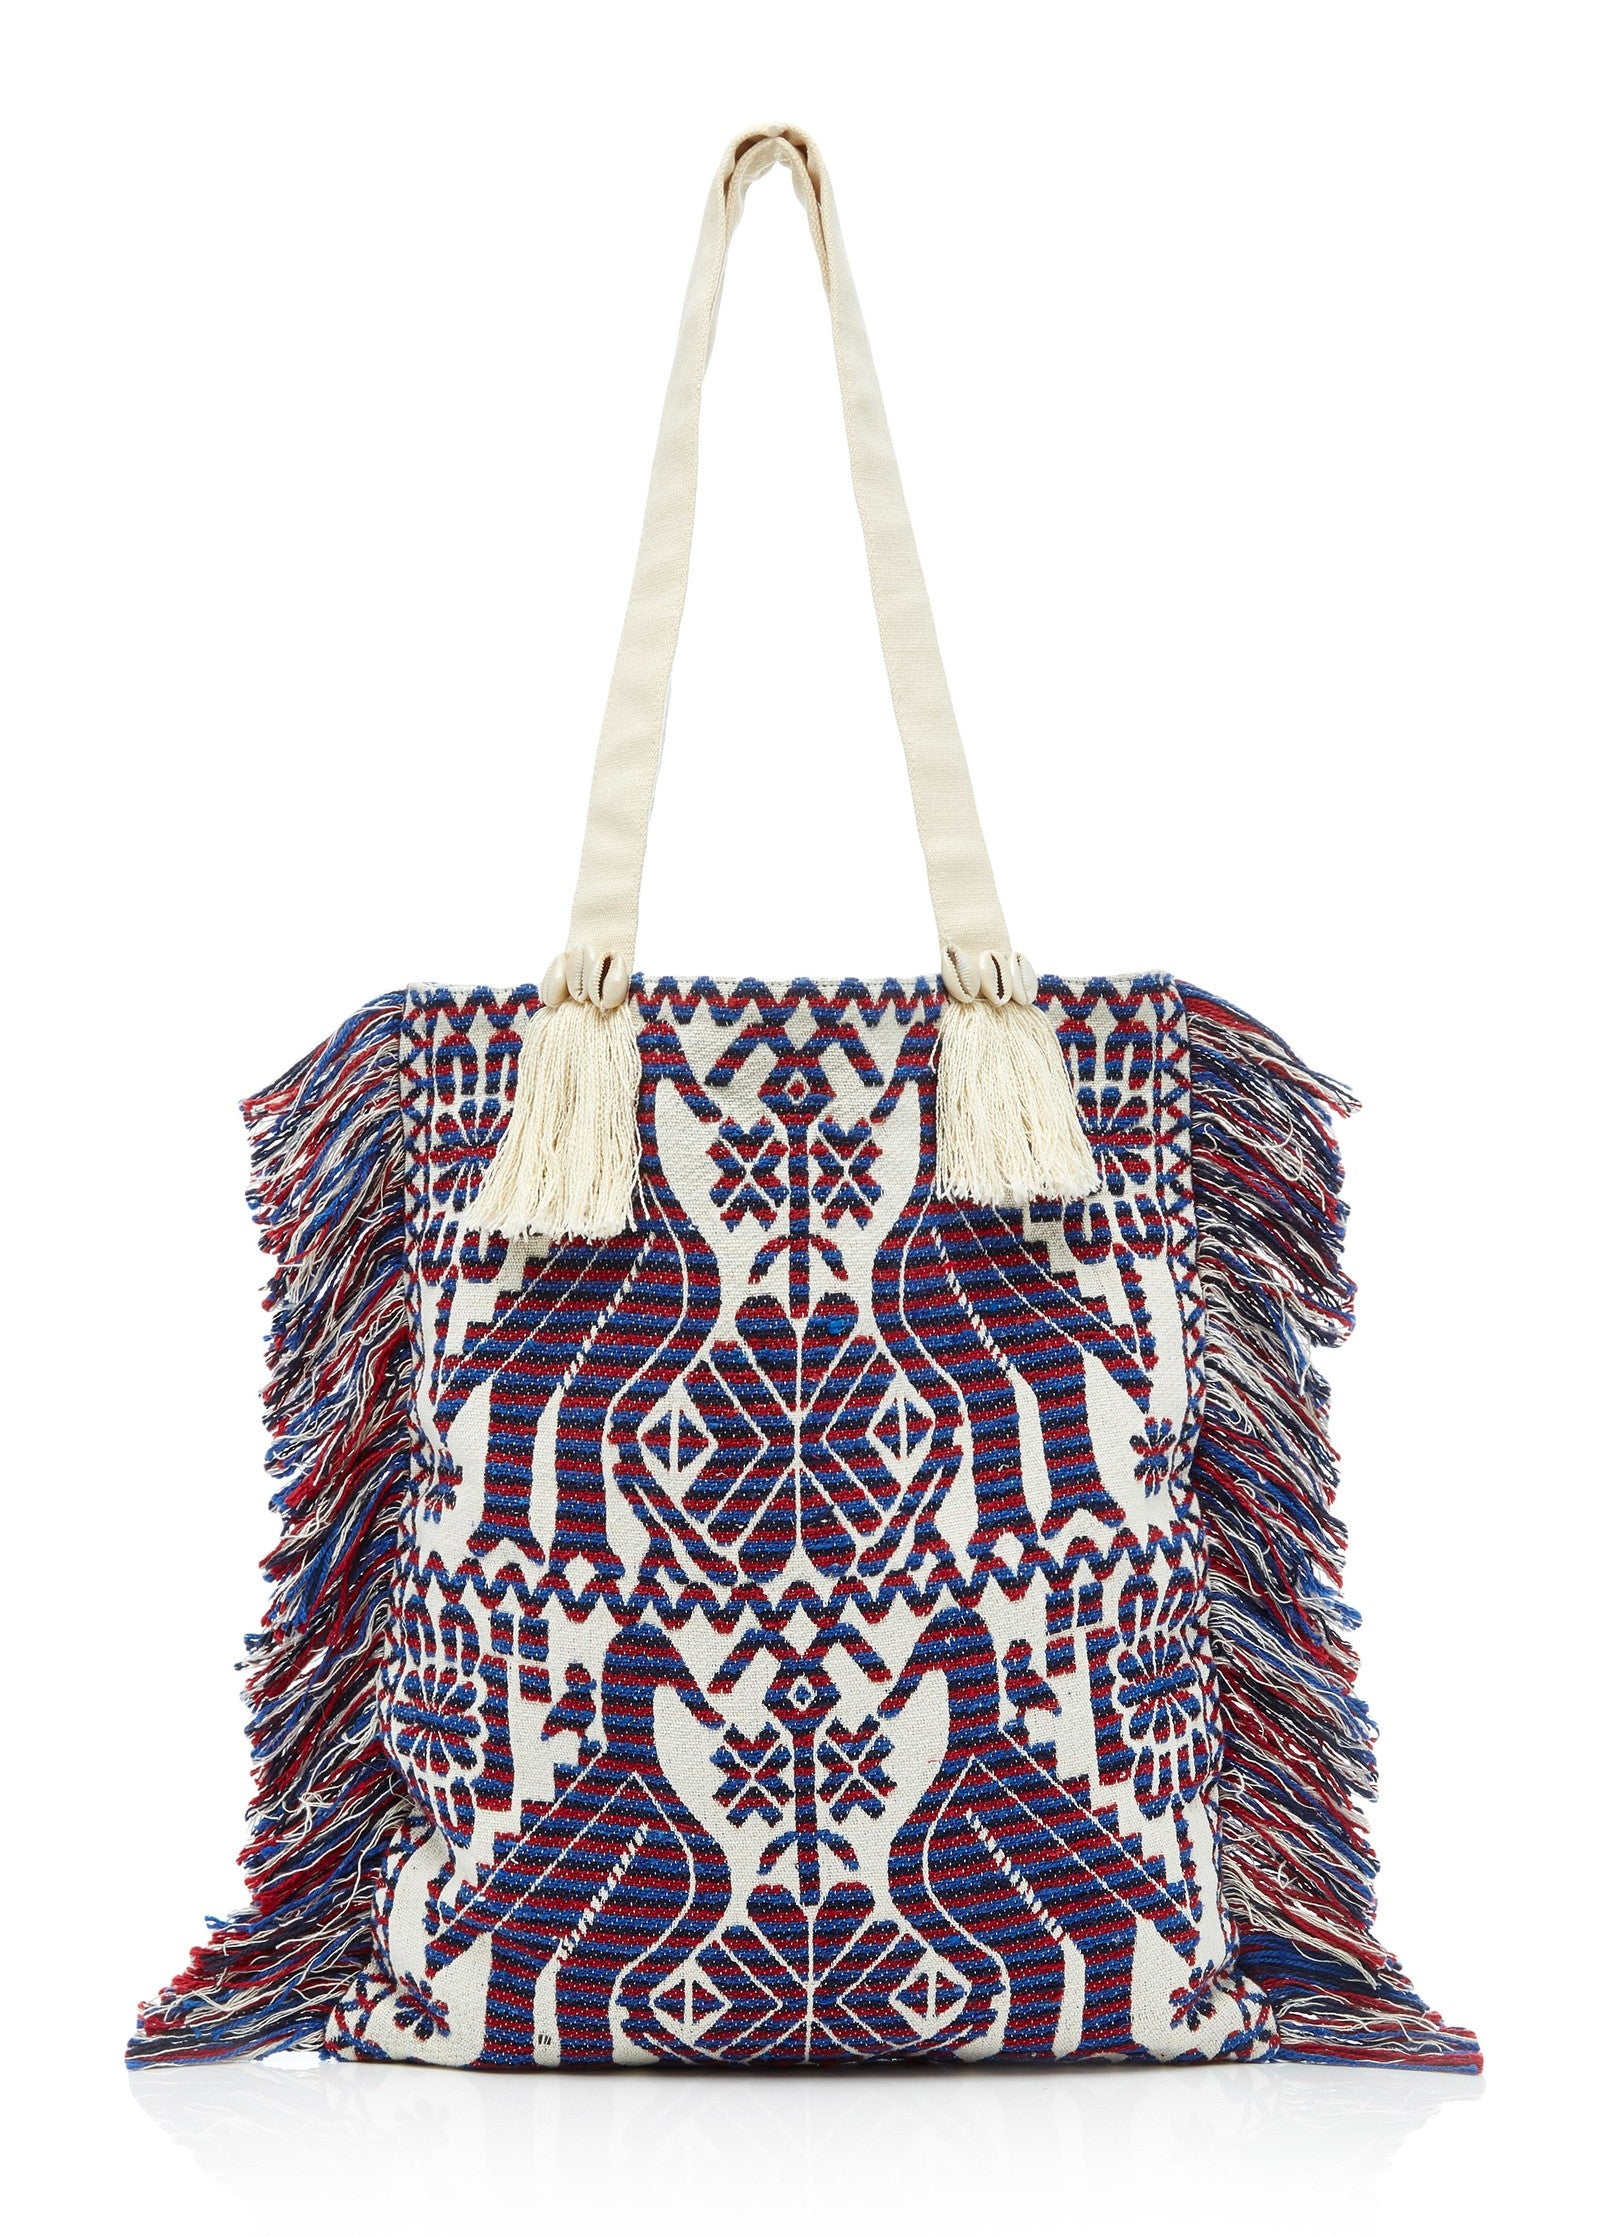 Figue Tikki bird tote in blue multi